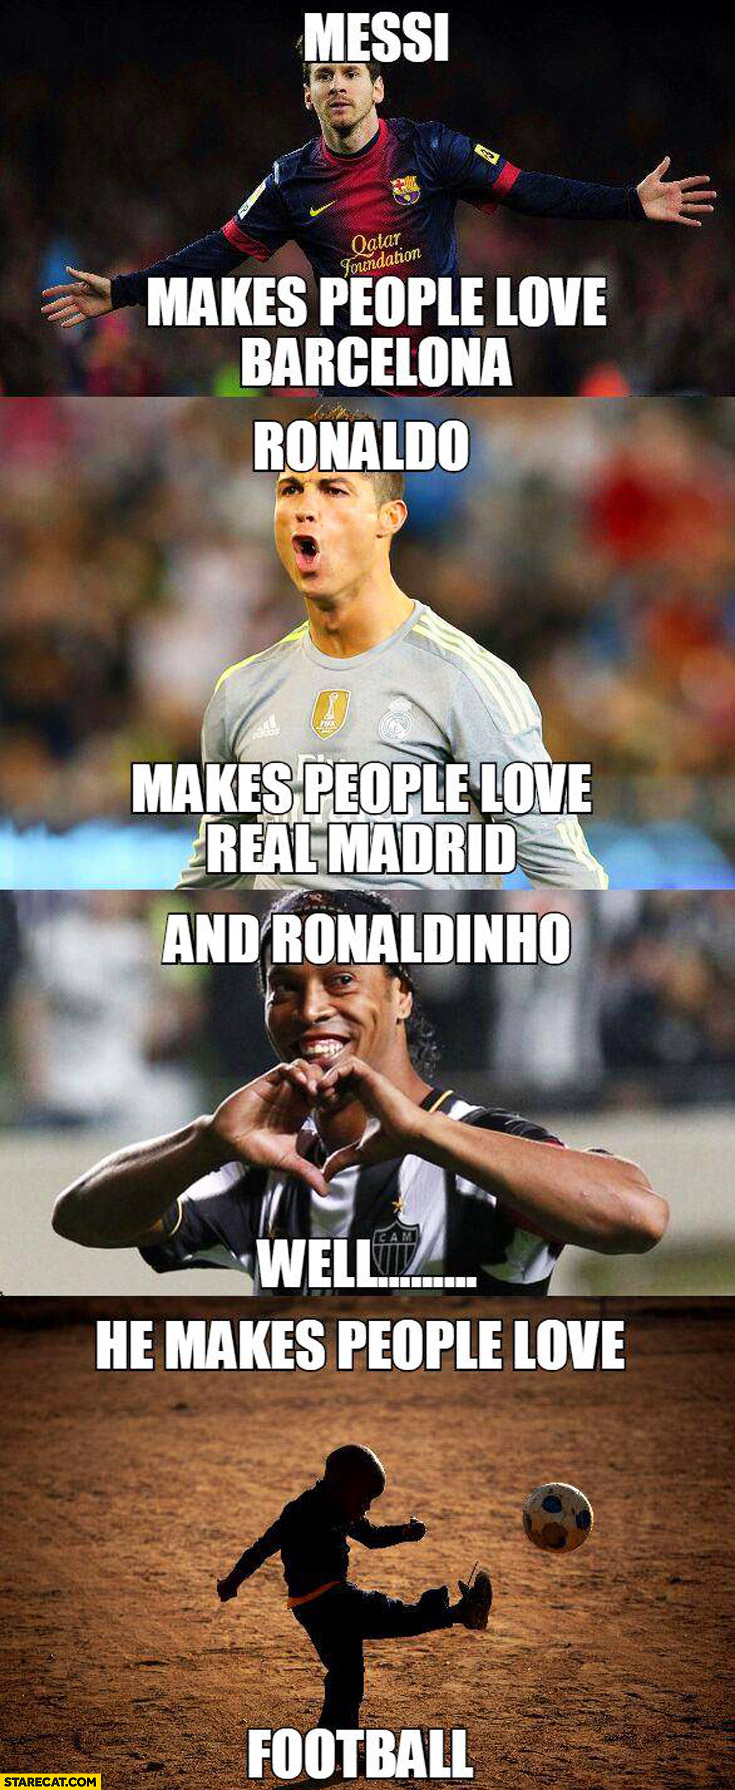 Messi makes people love Barcelona, Ronaldo makes people love Real, Ronaldinho makes people love football